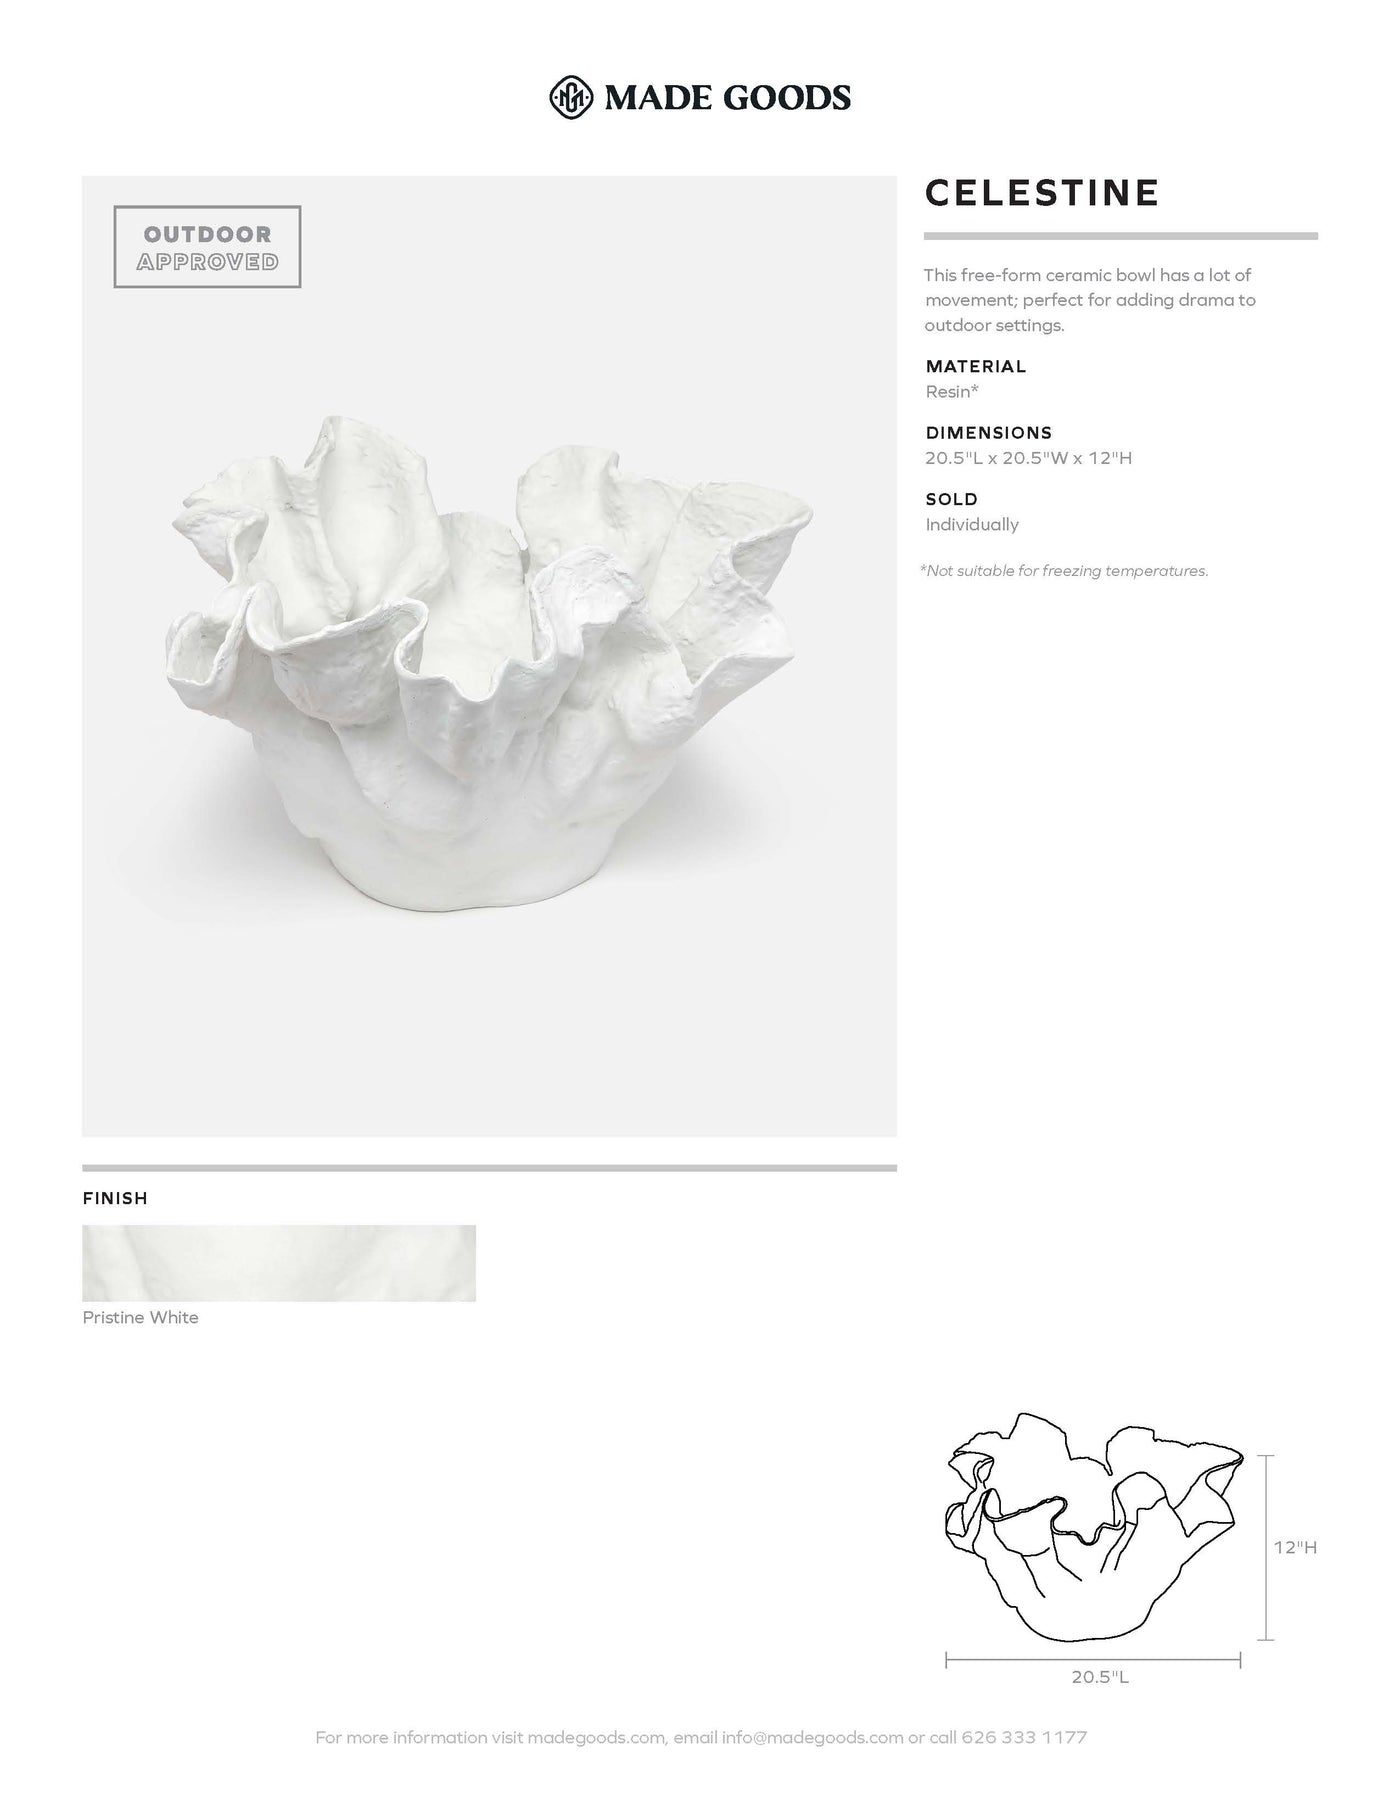 made goods celestine bowl tearsheet